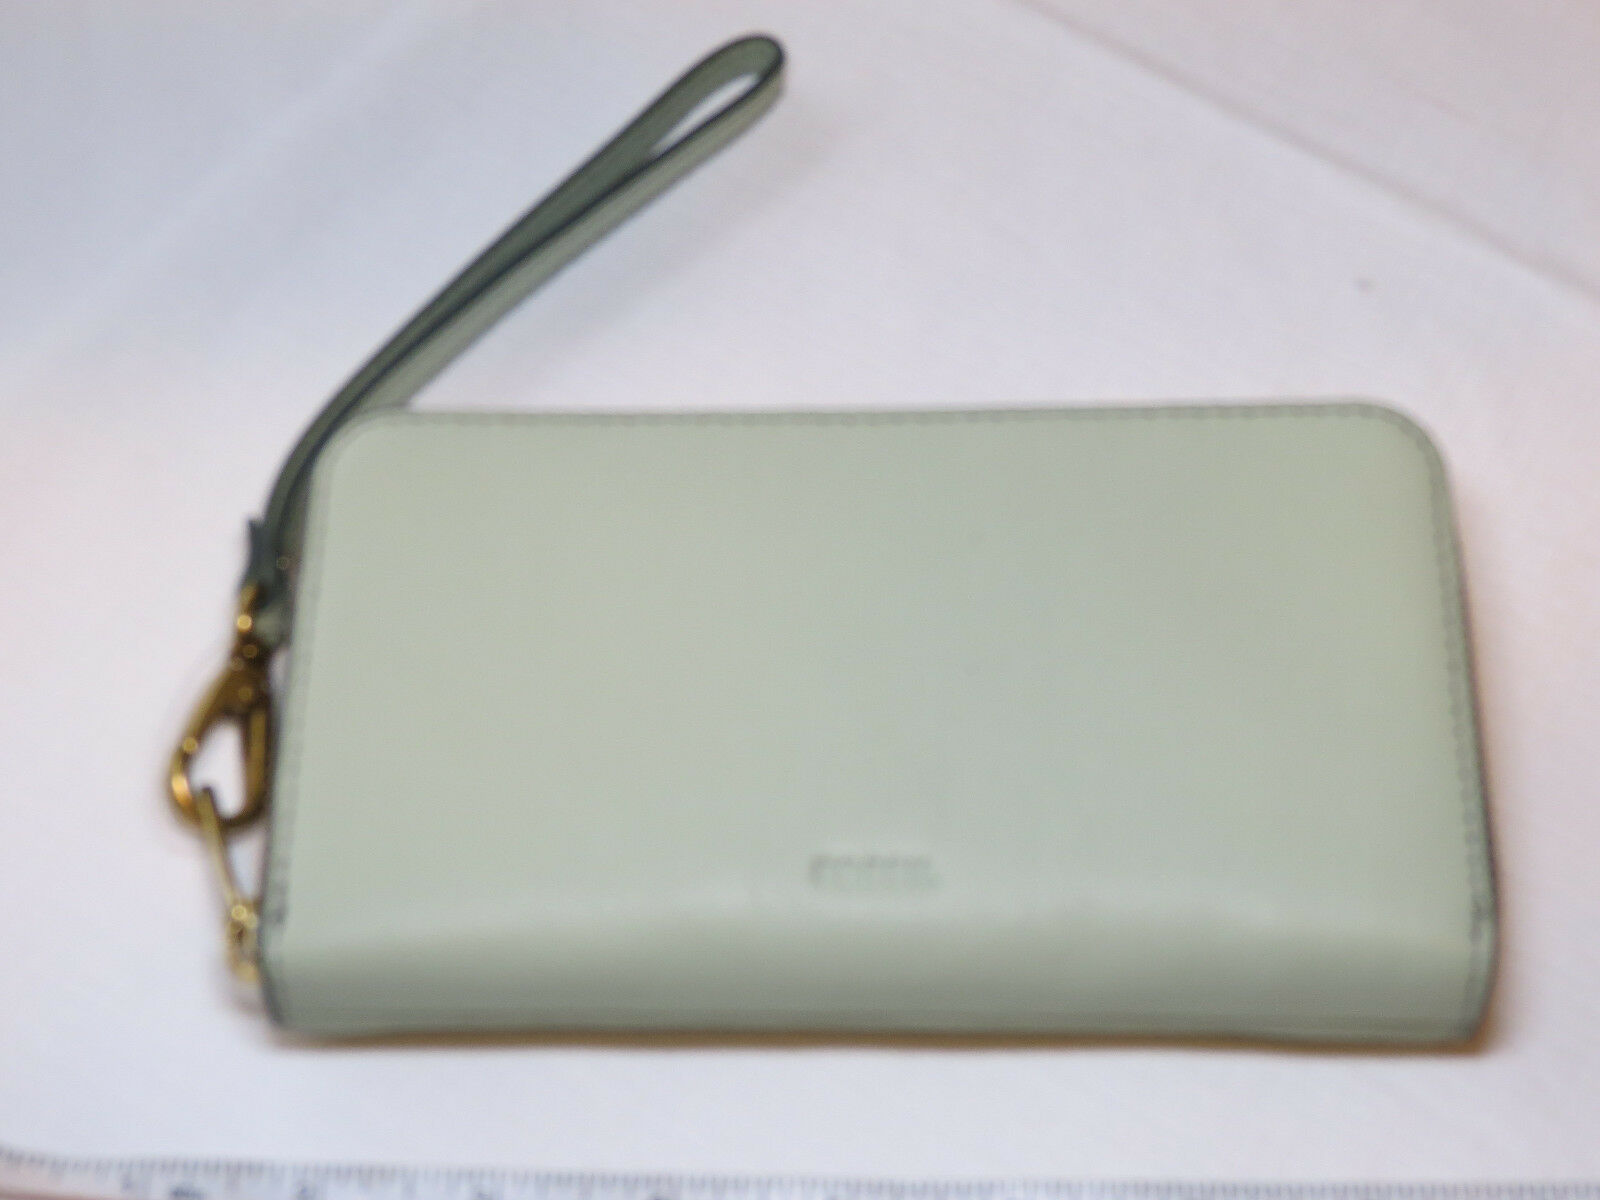 Primary image for Fossil SL7151336 RFID Emma Smartphone Wristlet Lght Sage wallet clutch leather*^